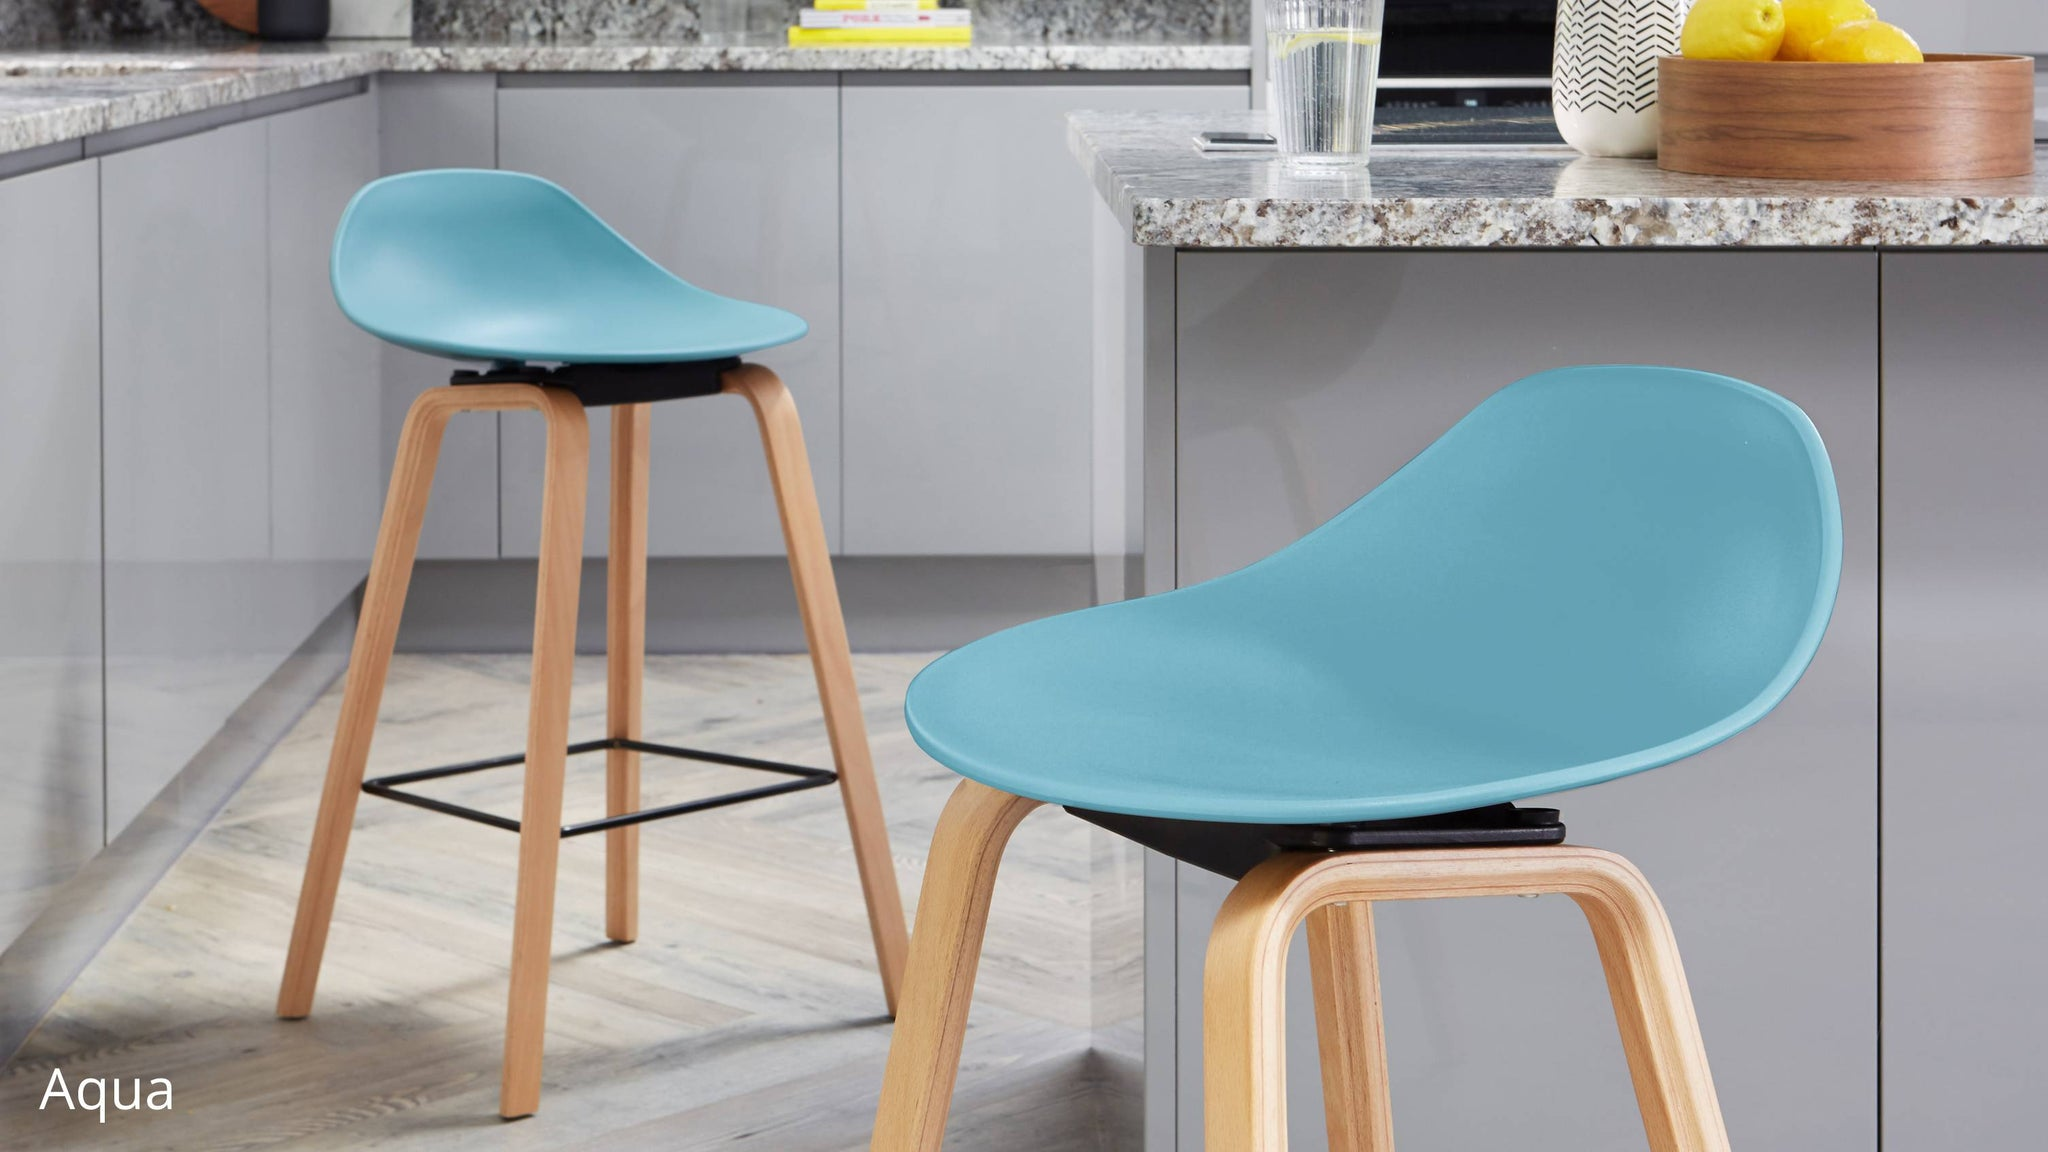 Buy colourful bar stools